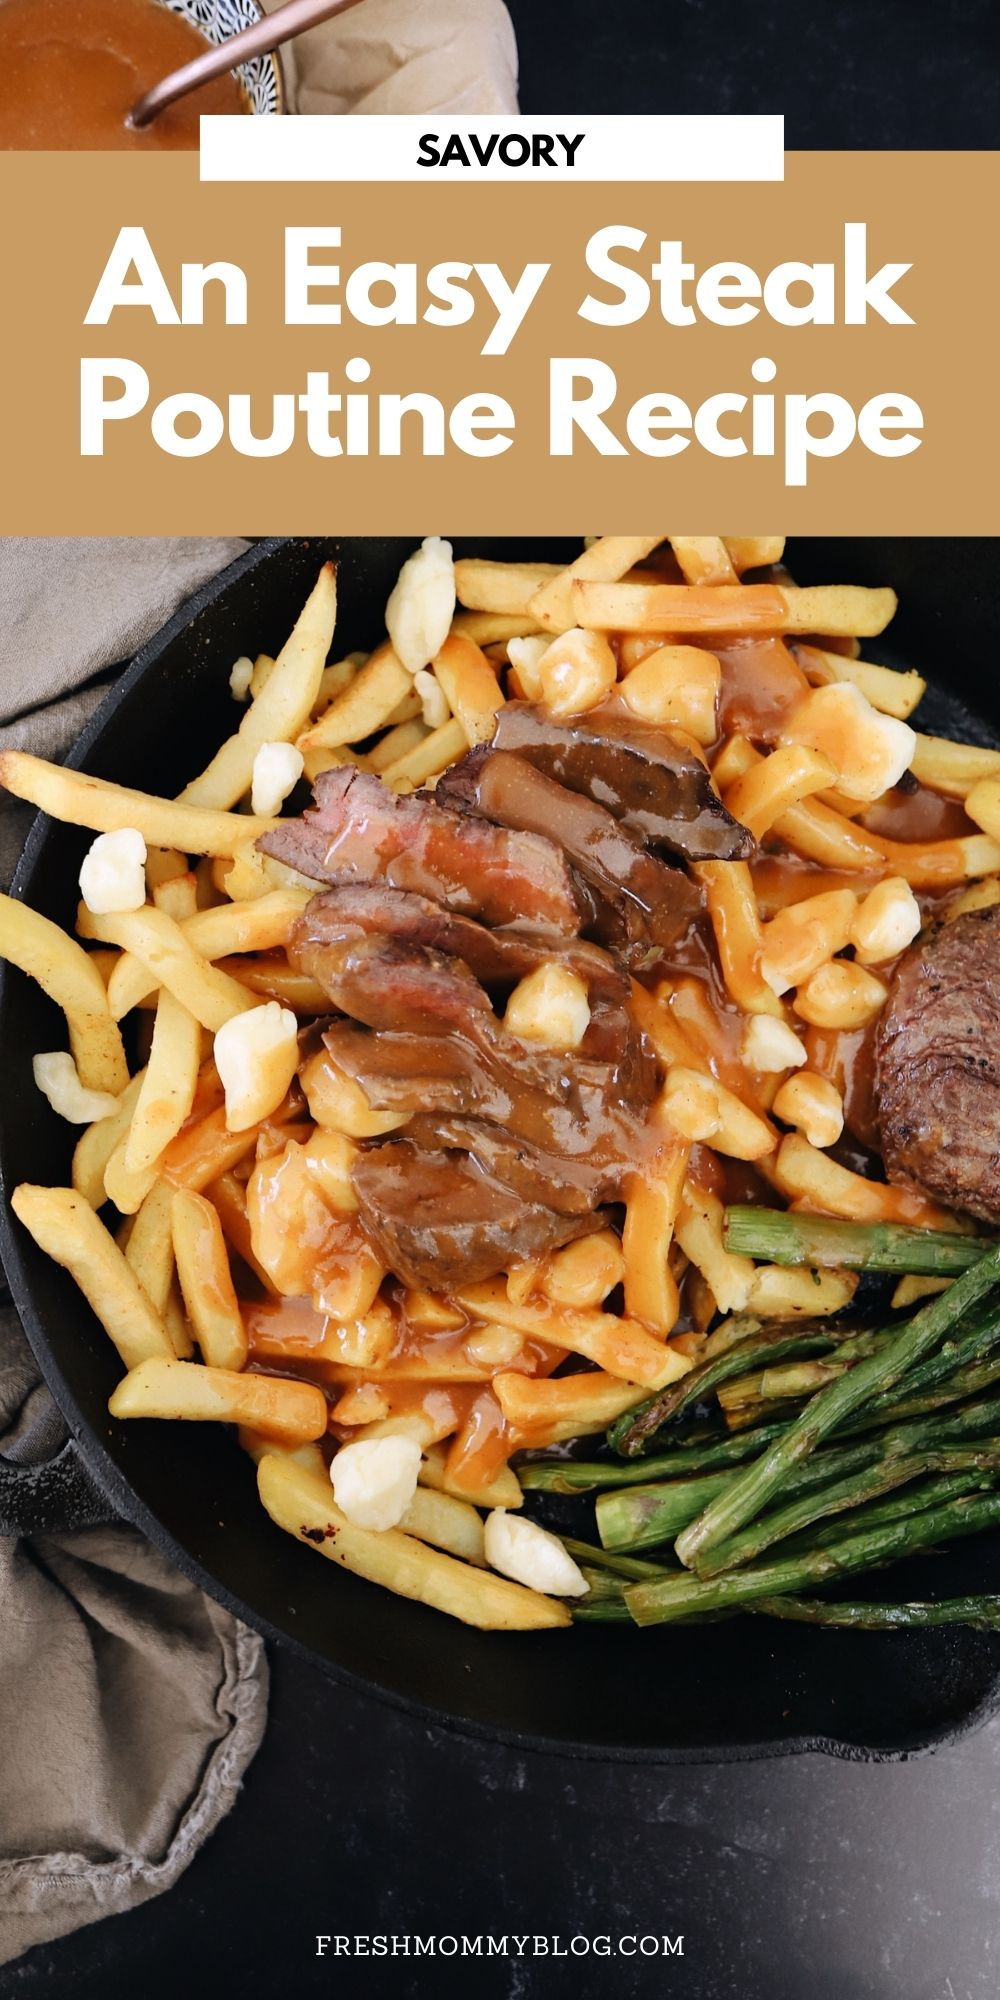 An Easy Steak Poutine Recipe with Fries and Gravy  Poutine Recipe by popular Florida lifestyle blog, Fresh Mommy Blog: Pinterest image of poutine.